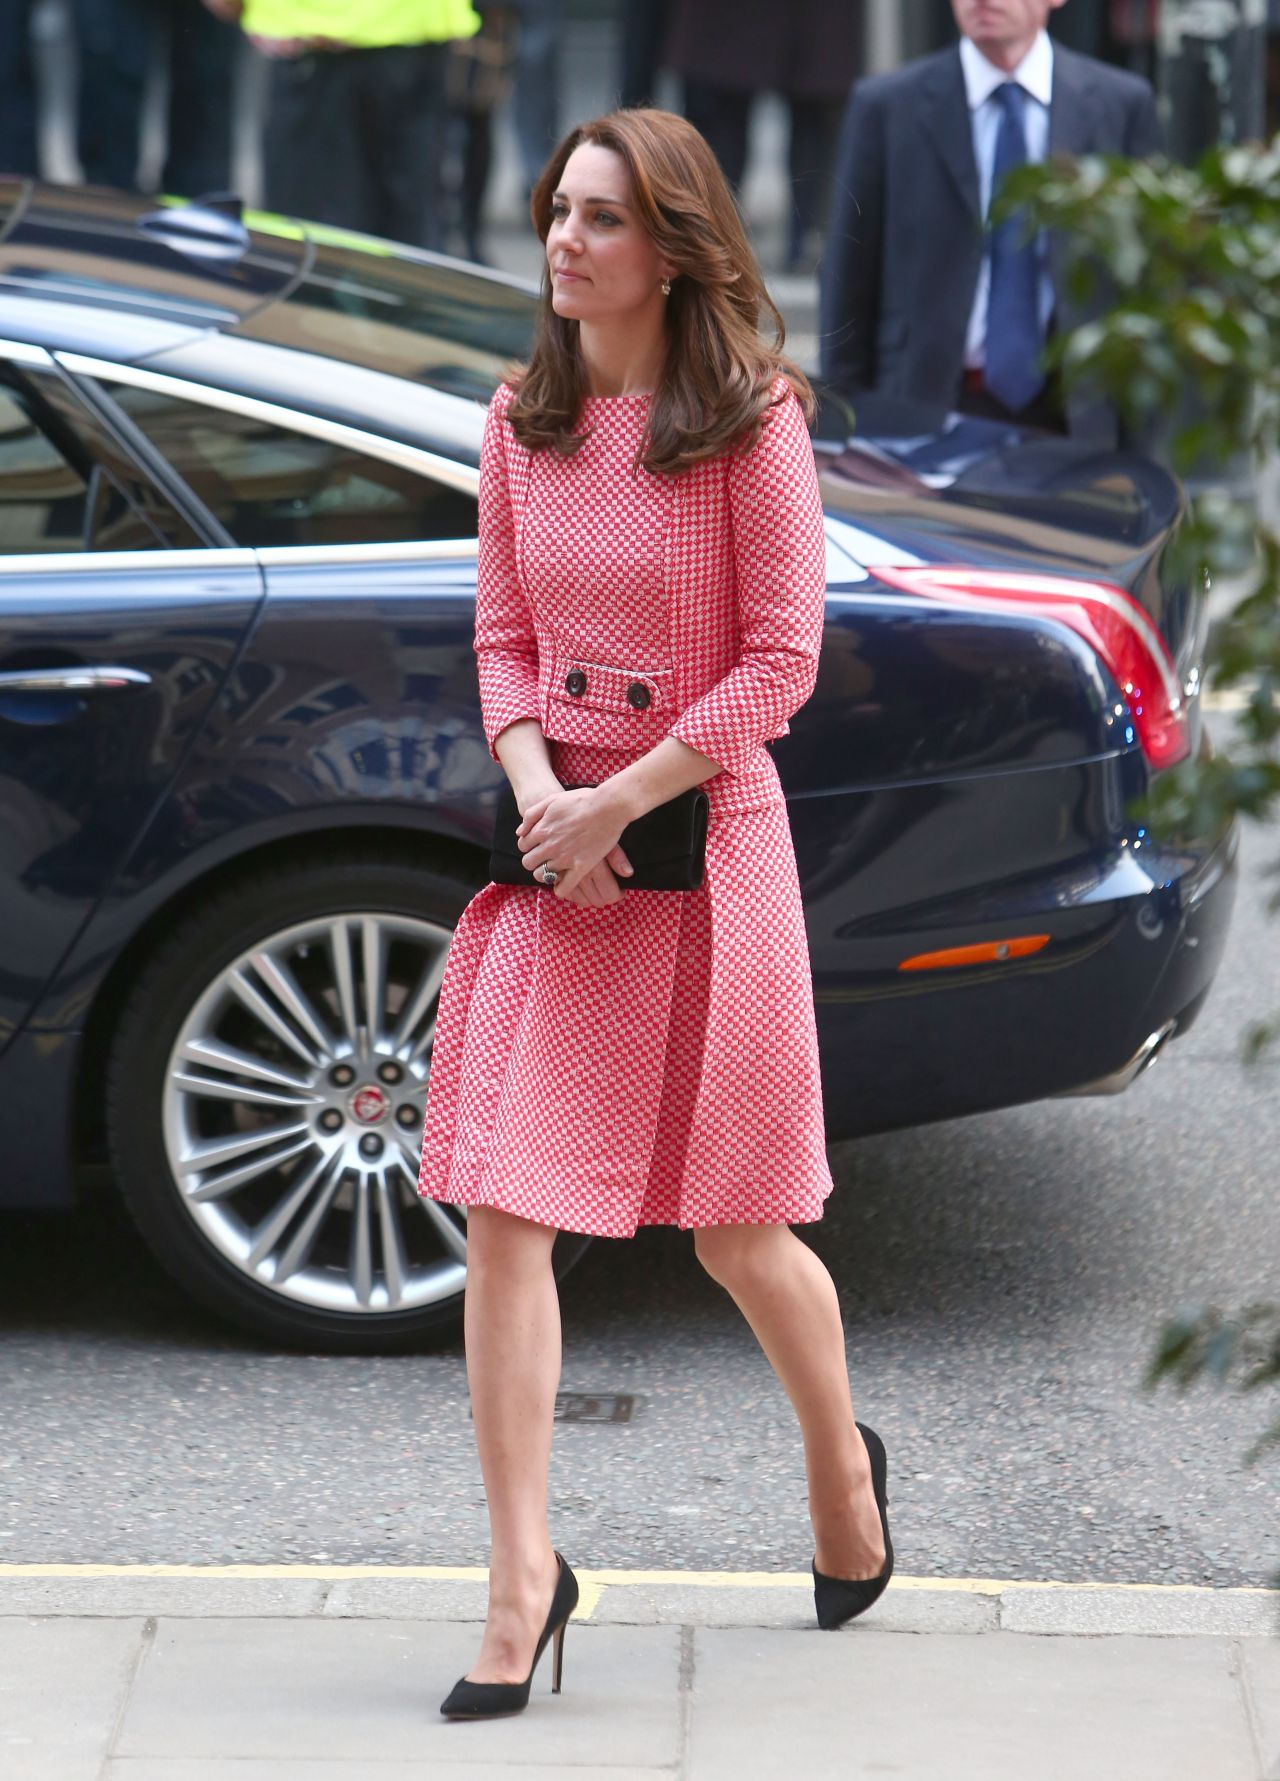 Kate Middleton Visit The Mentoring Programme Of The Xlp Project At London Wall 3 11 2016